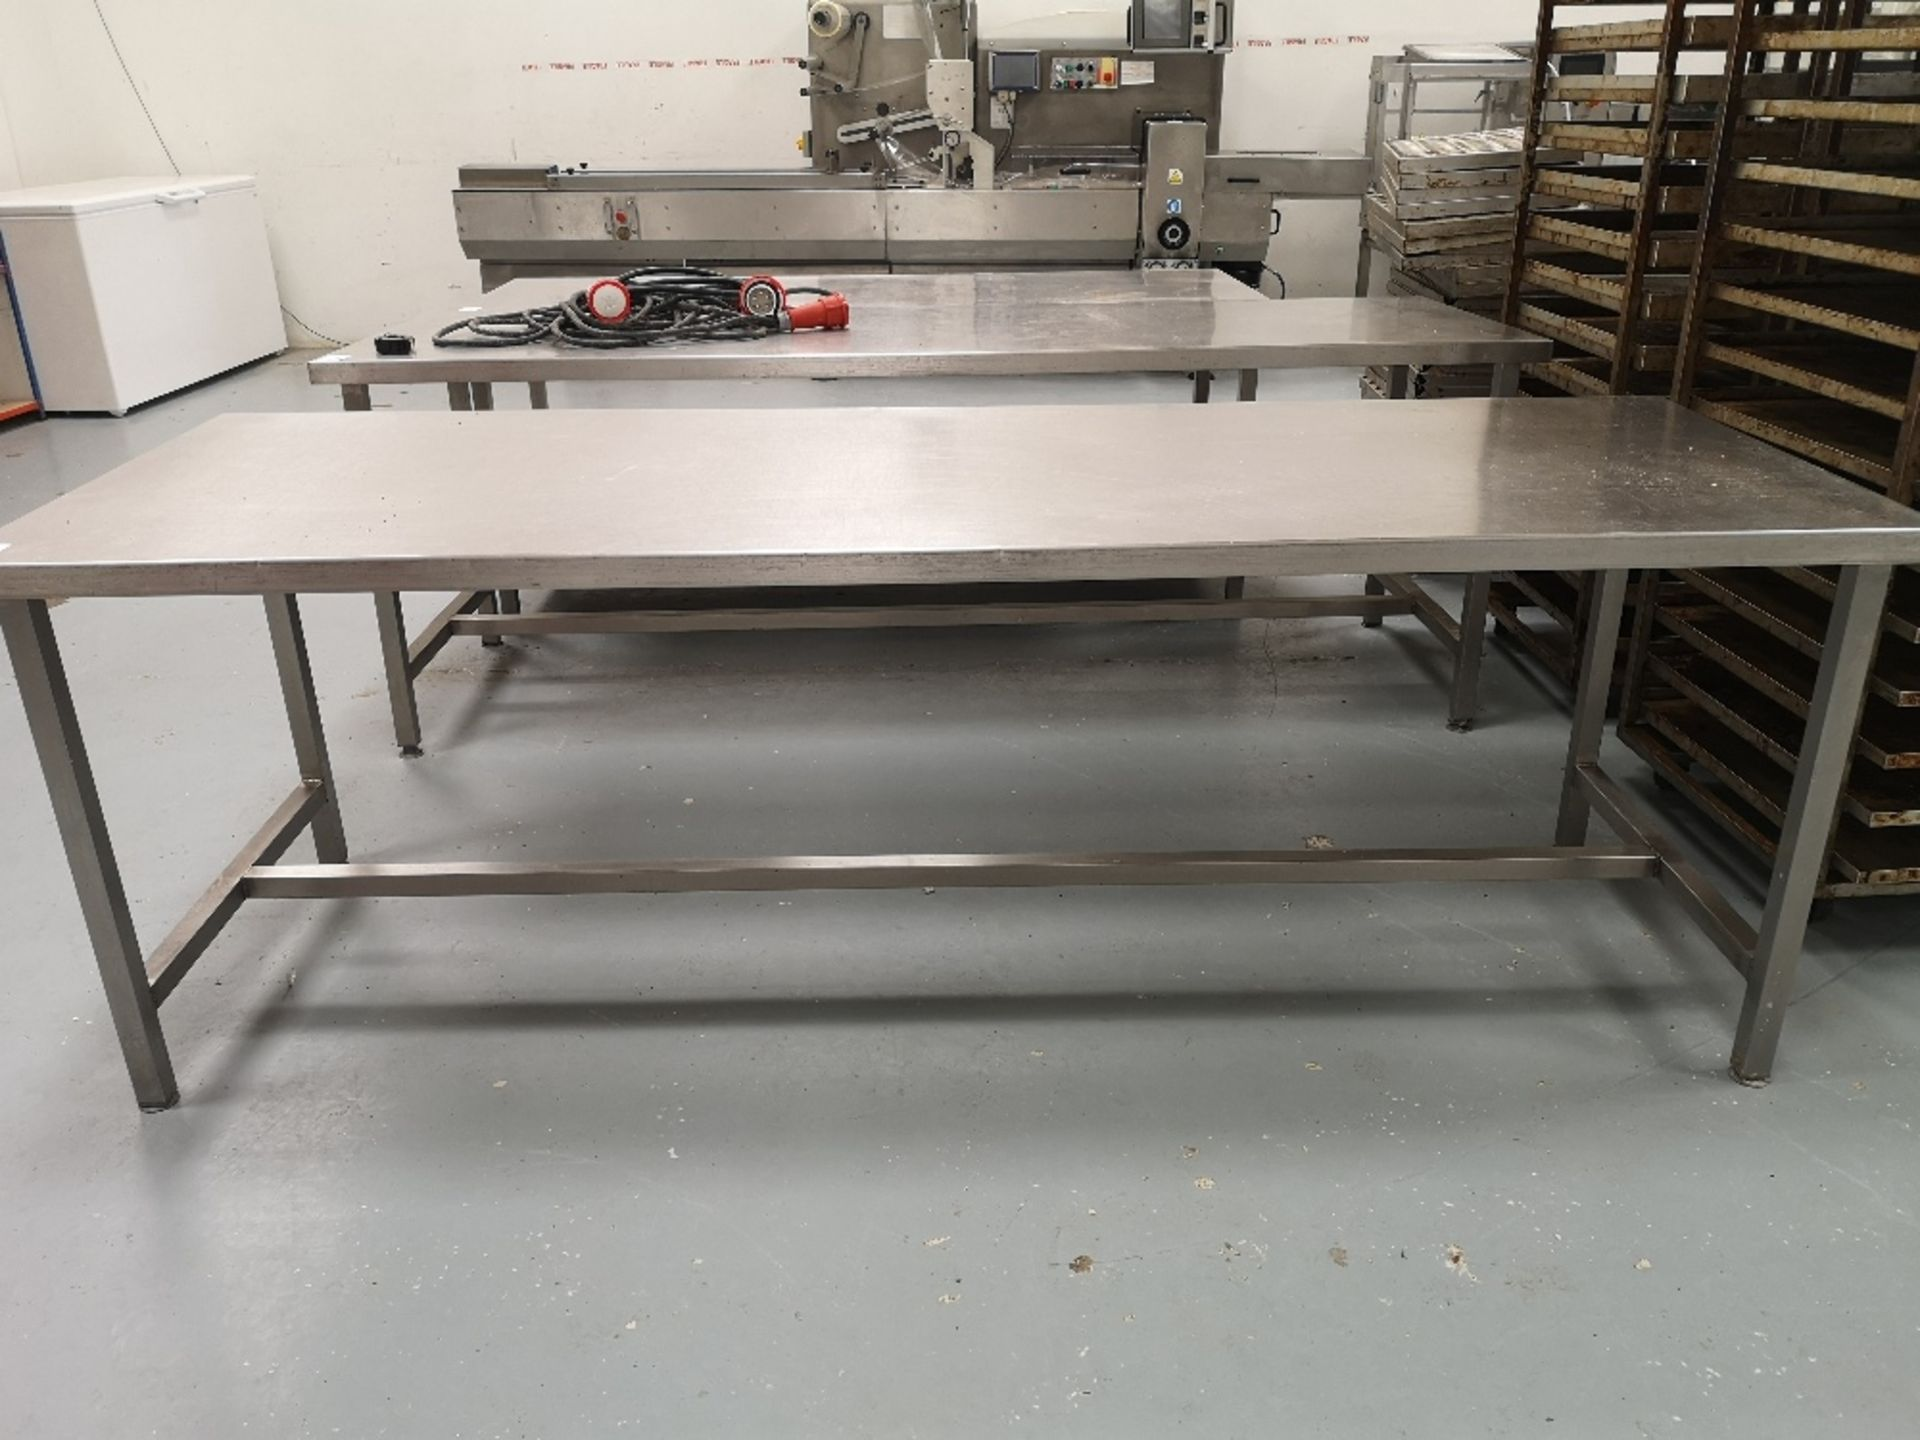 Stainless Steel Preparation Table - Image 2 of 3